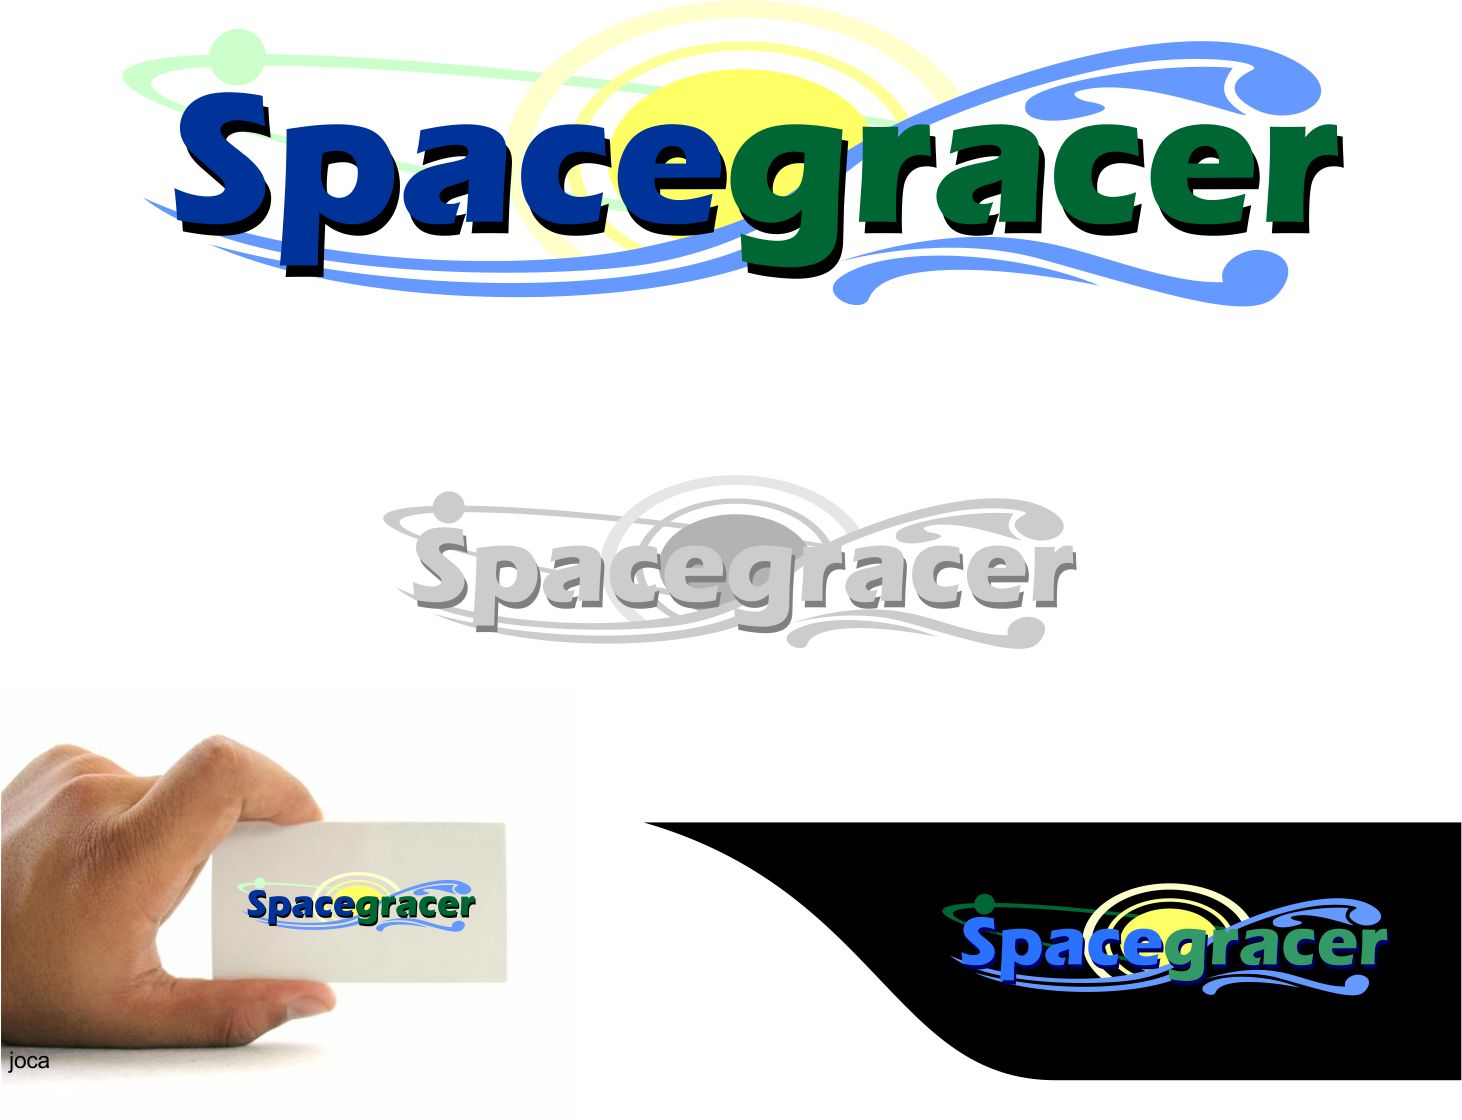 Logo Design by joca - Entry No. 130 in the Logo Design Contest Fun Logo Design for Spacegrazer.